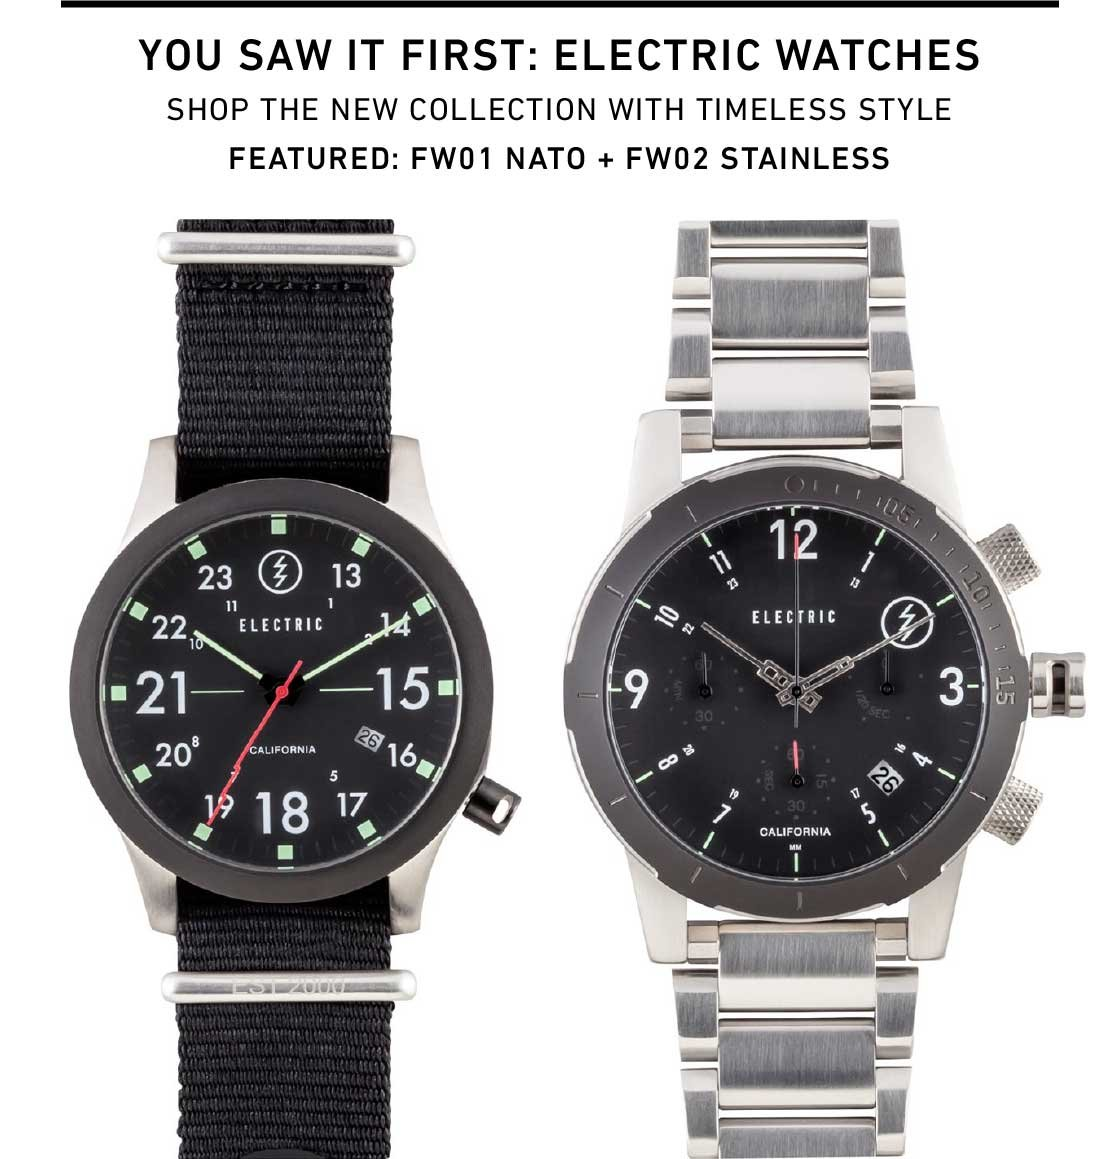 Shop New Watches from Electric